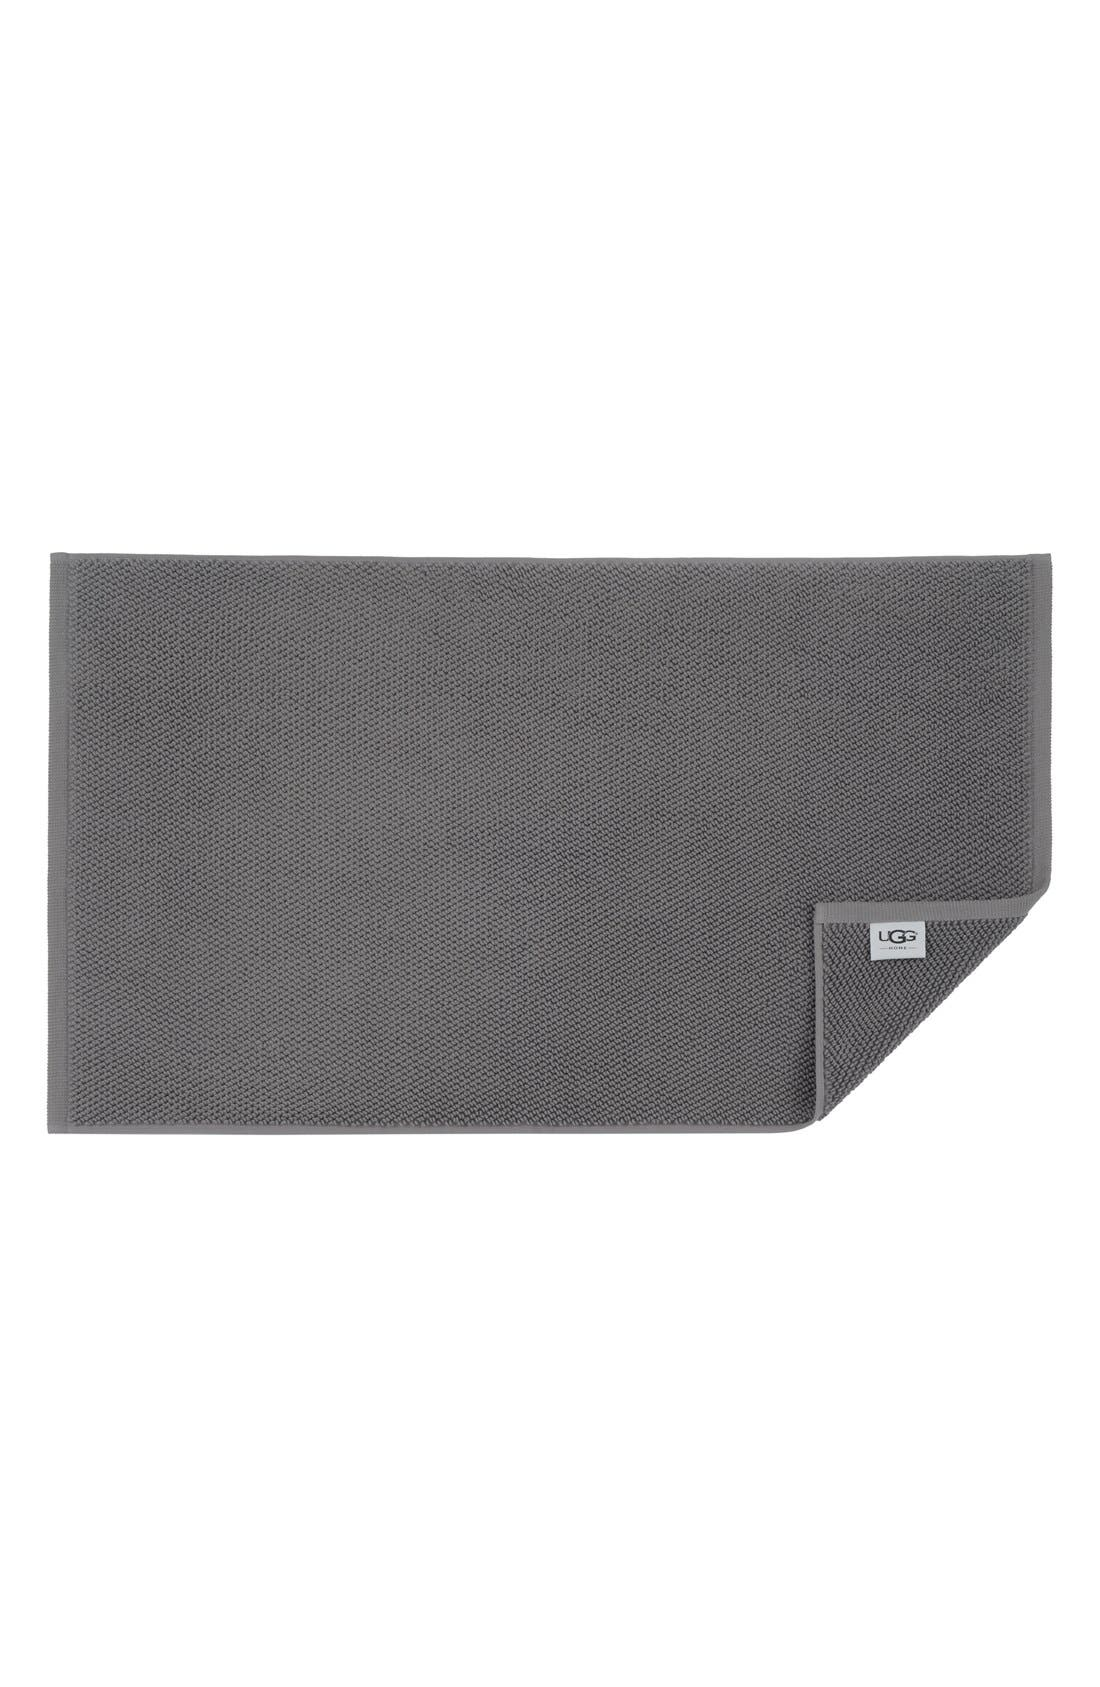 UGG<SUP>®</SUP> 'Classic Luxe' Bath Rug, Main, color, GRANITE